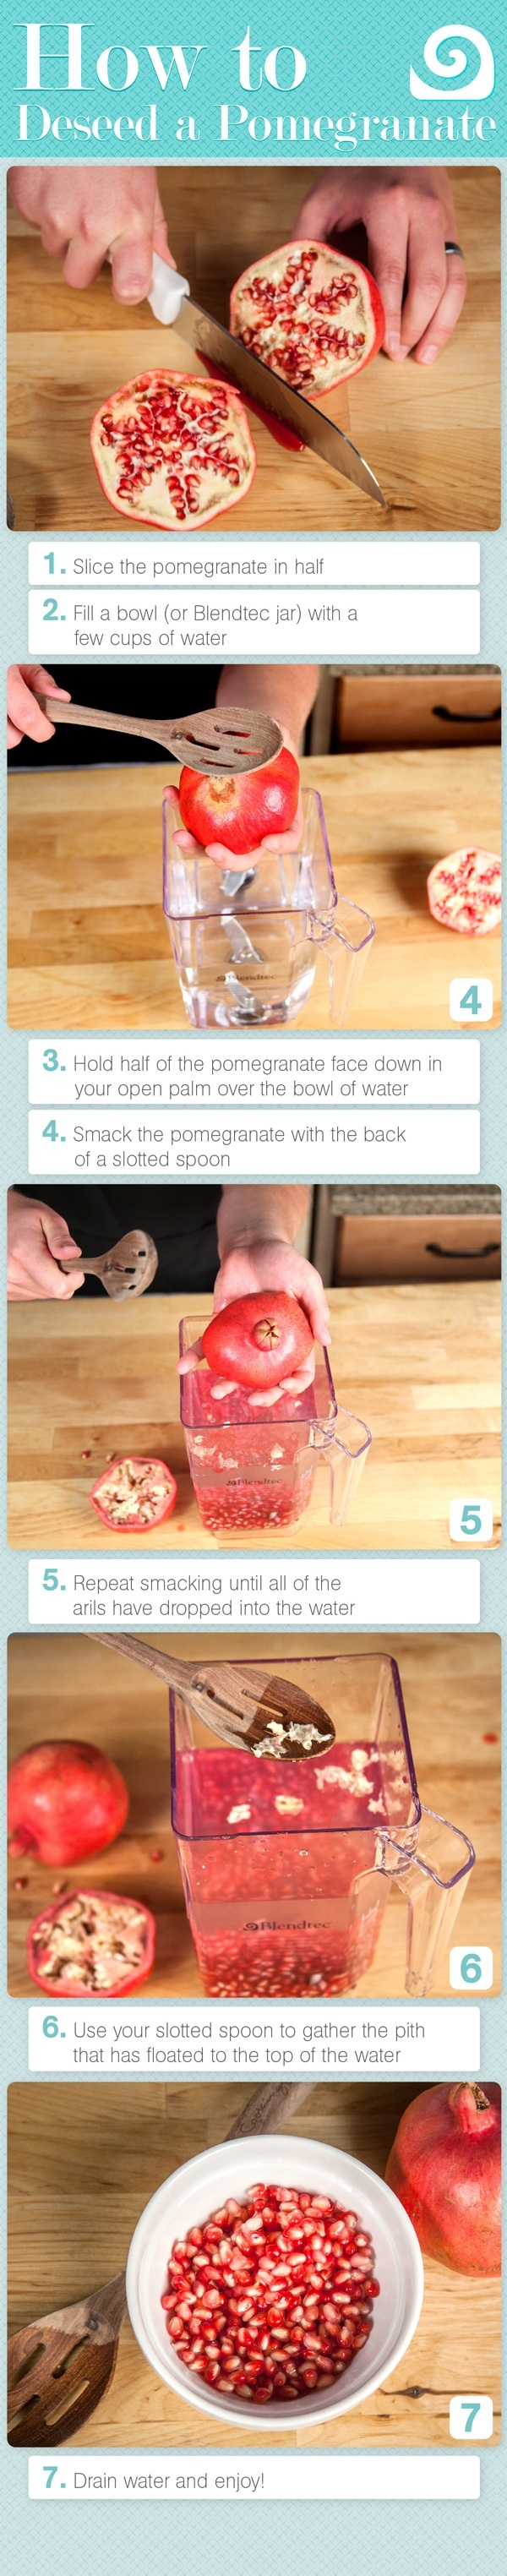 #POMEGRANATE - This will come in handy!